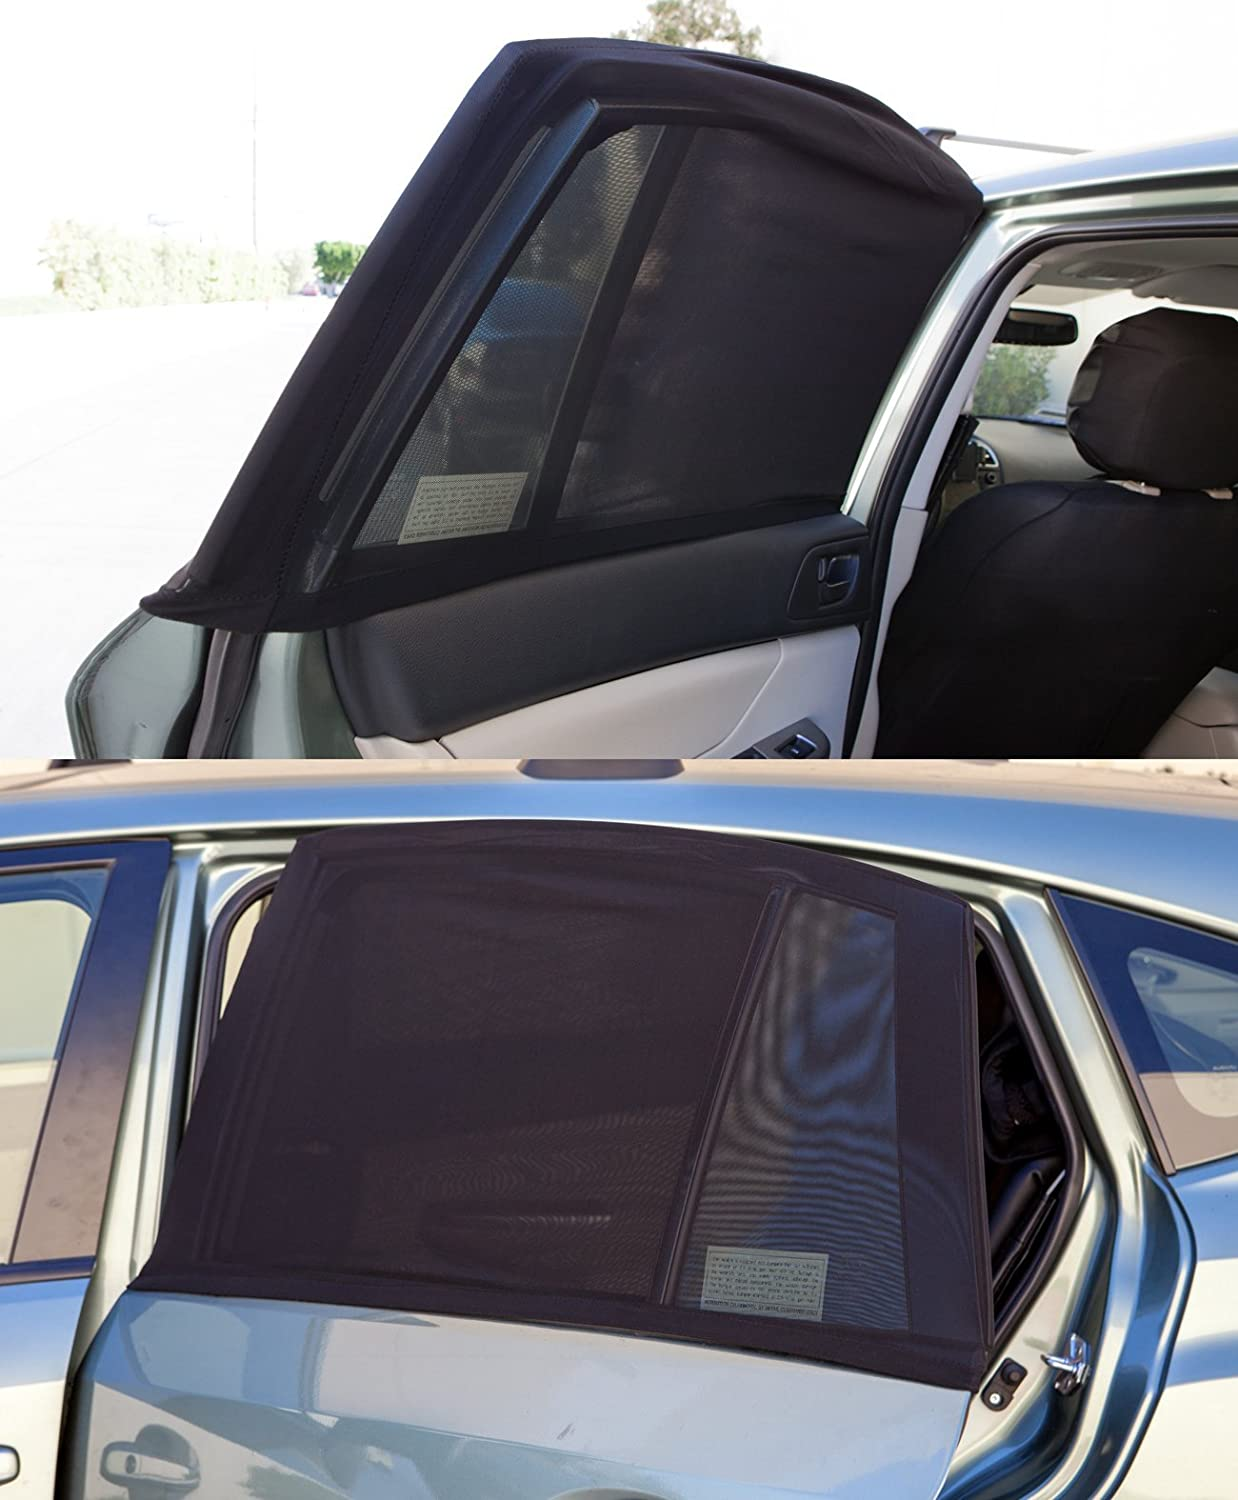 Amazon.com  OxGord Back Window Car Sun Shade for Baby (Pack of 2) Universal  Fit Air Mesh Screen Sunshade Cover fits Most Cars   SUVs  Automotive 550b0480694